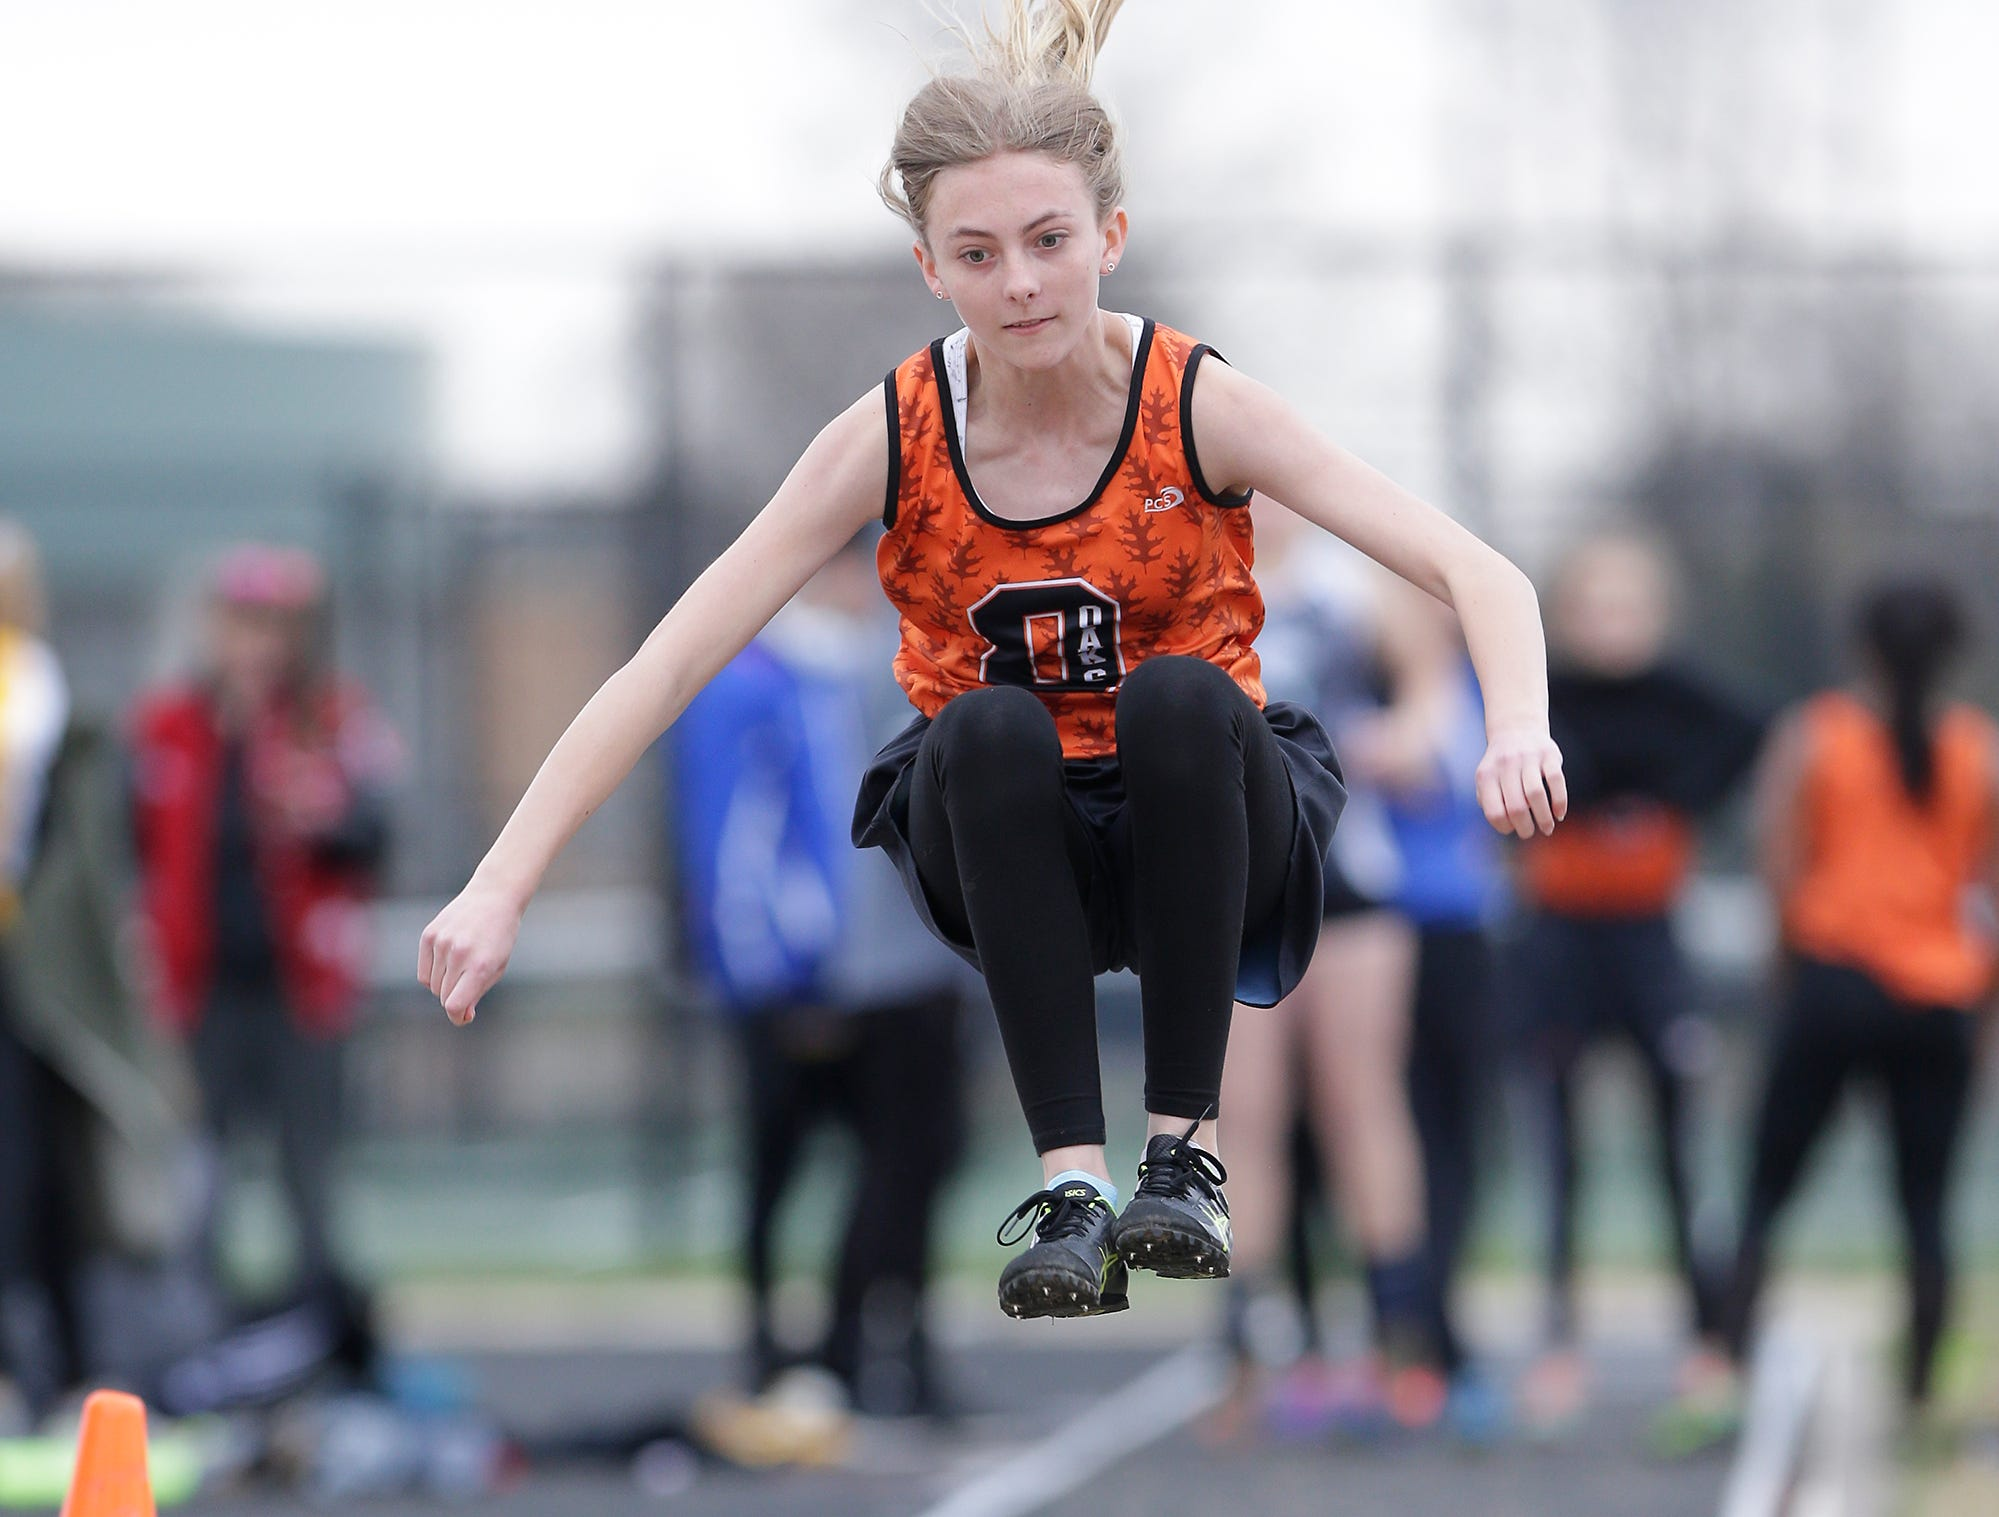 Mallory Schafer of Oakfield High School competes in the long jump Friday, May 3, 2019 at the Waupun High School Invitational track and field meet. Doug Raflik/USA TODAY NETWORK-Wisconsin